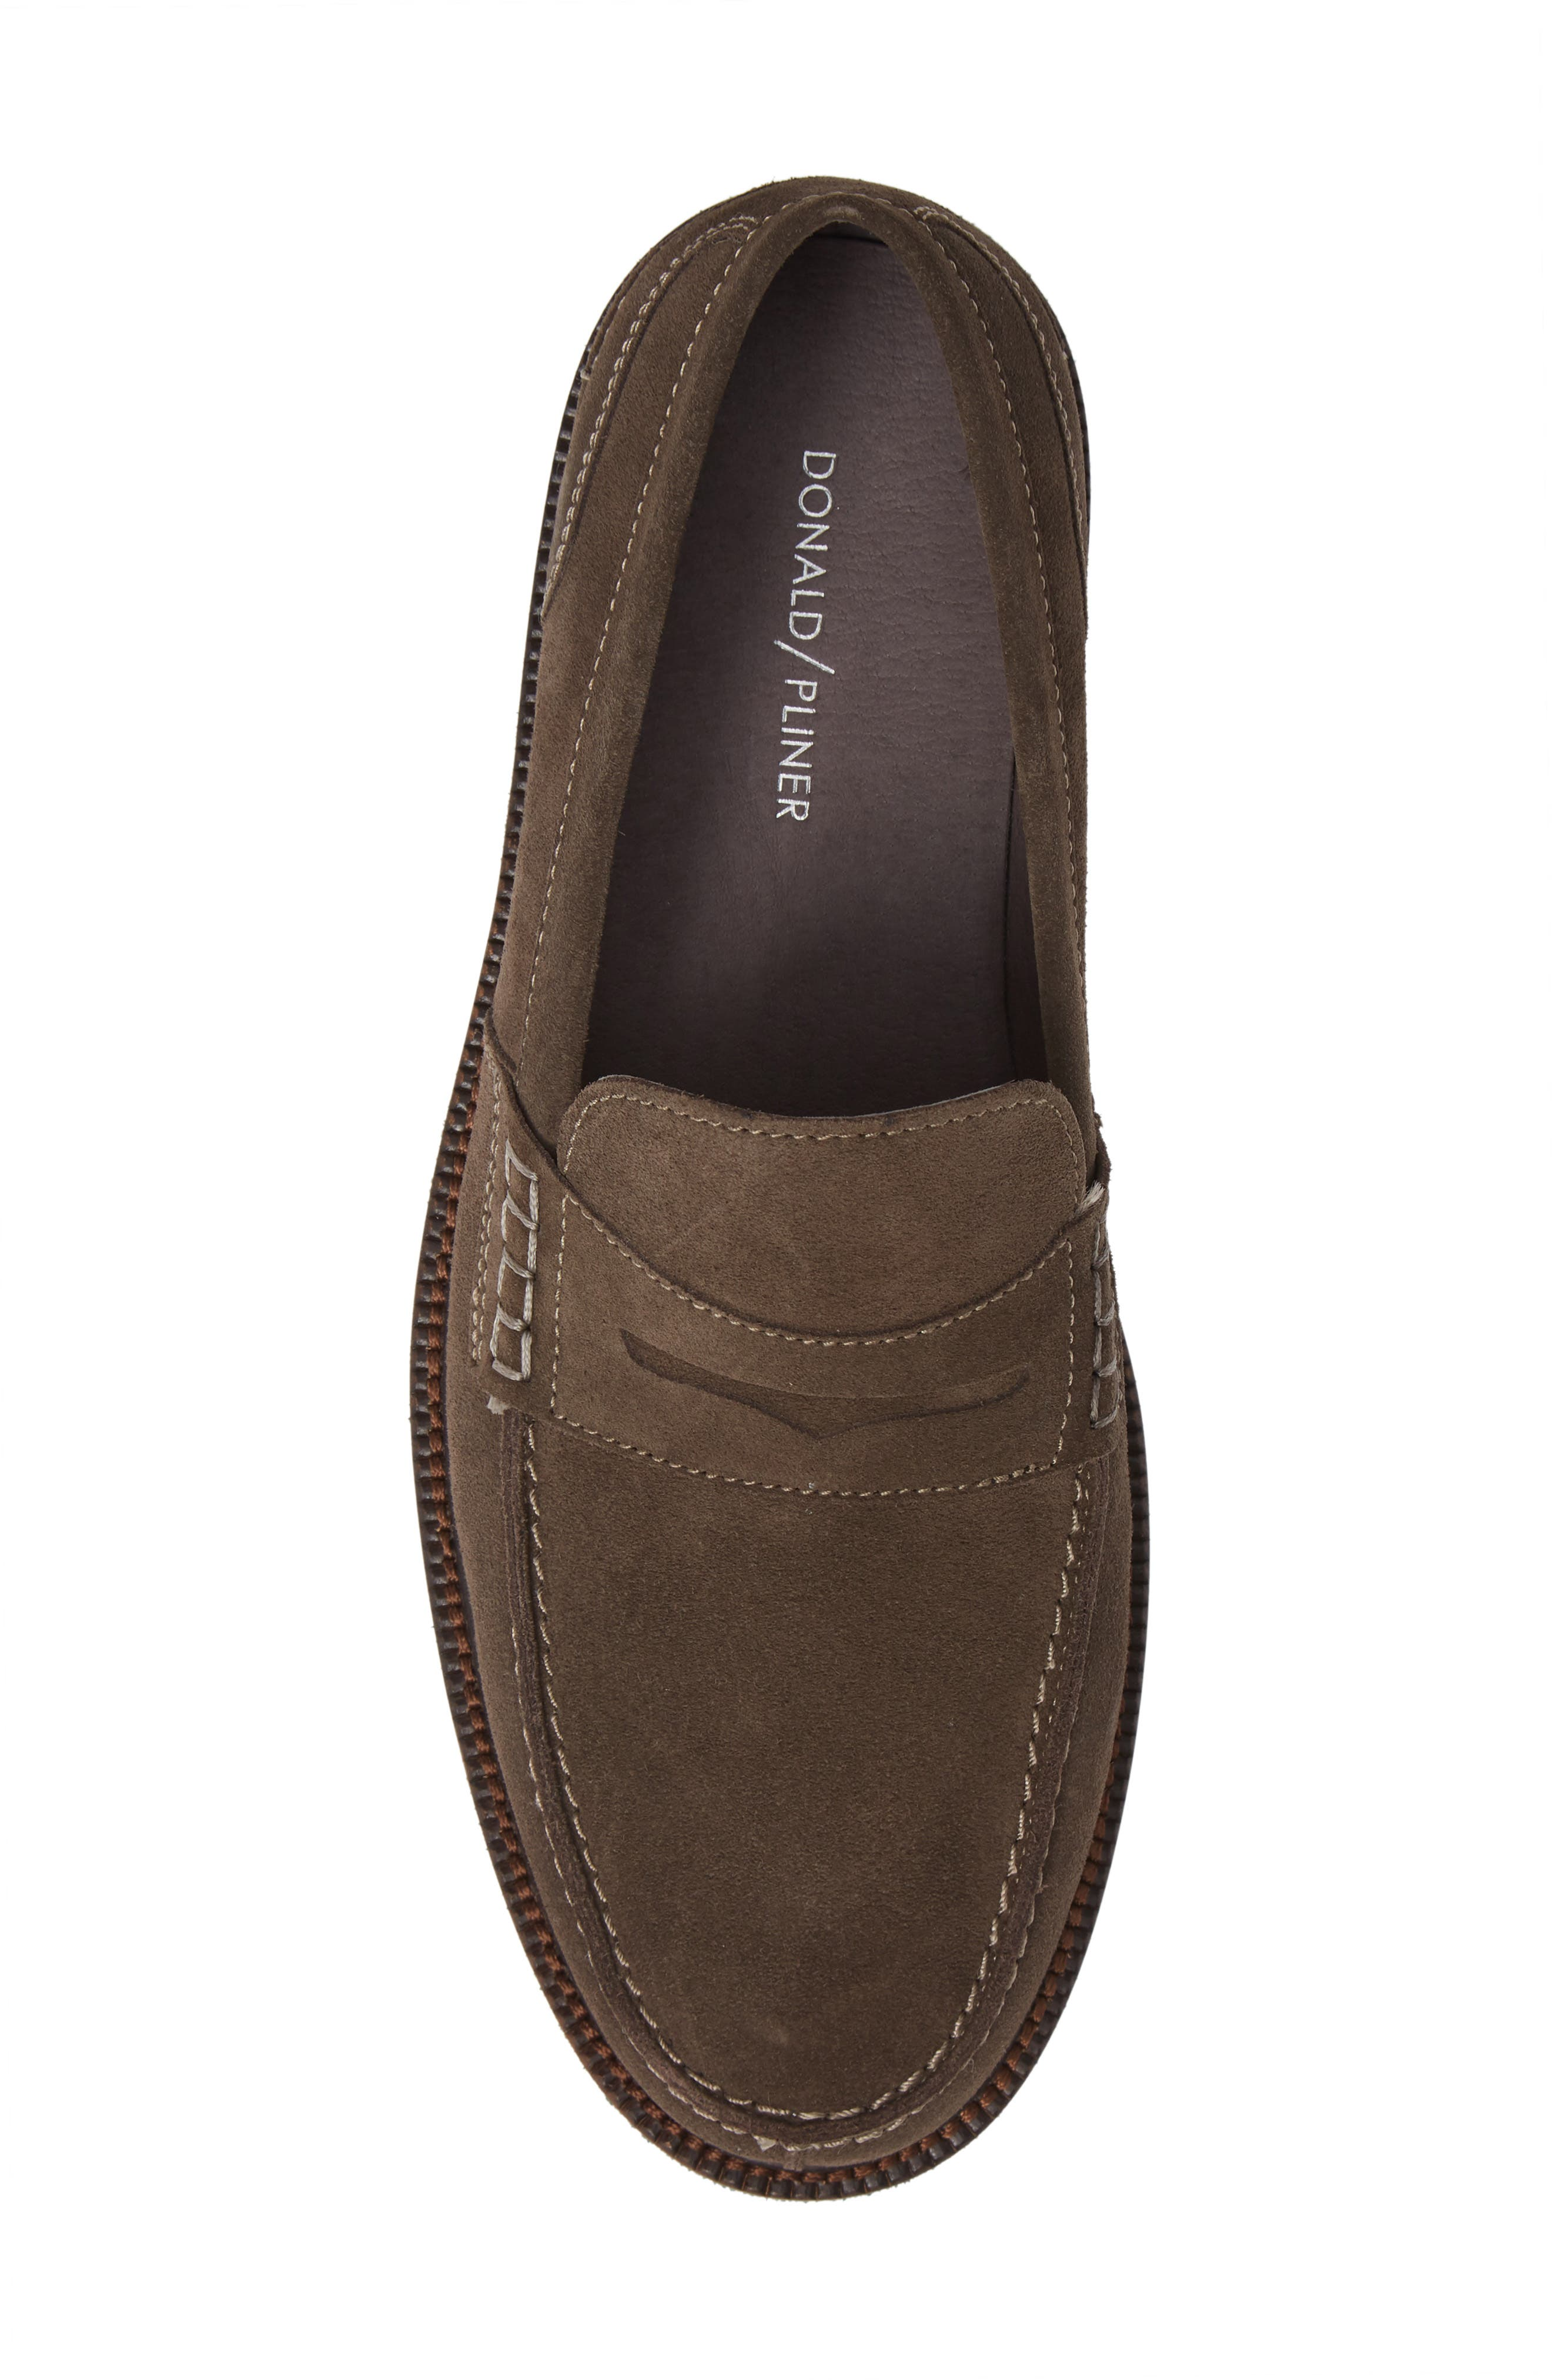 Landry Penny Loafer,                             Alternate thumbnail 5, color,                             GREY SUEDE